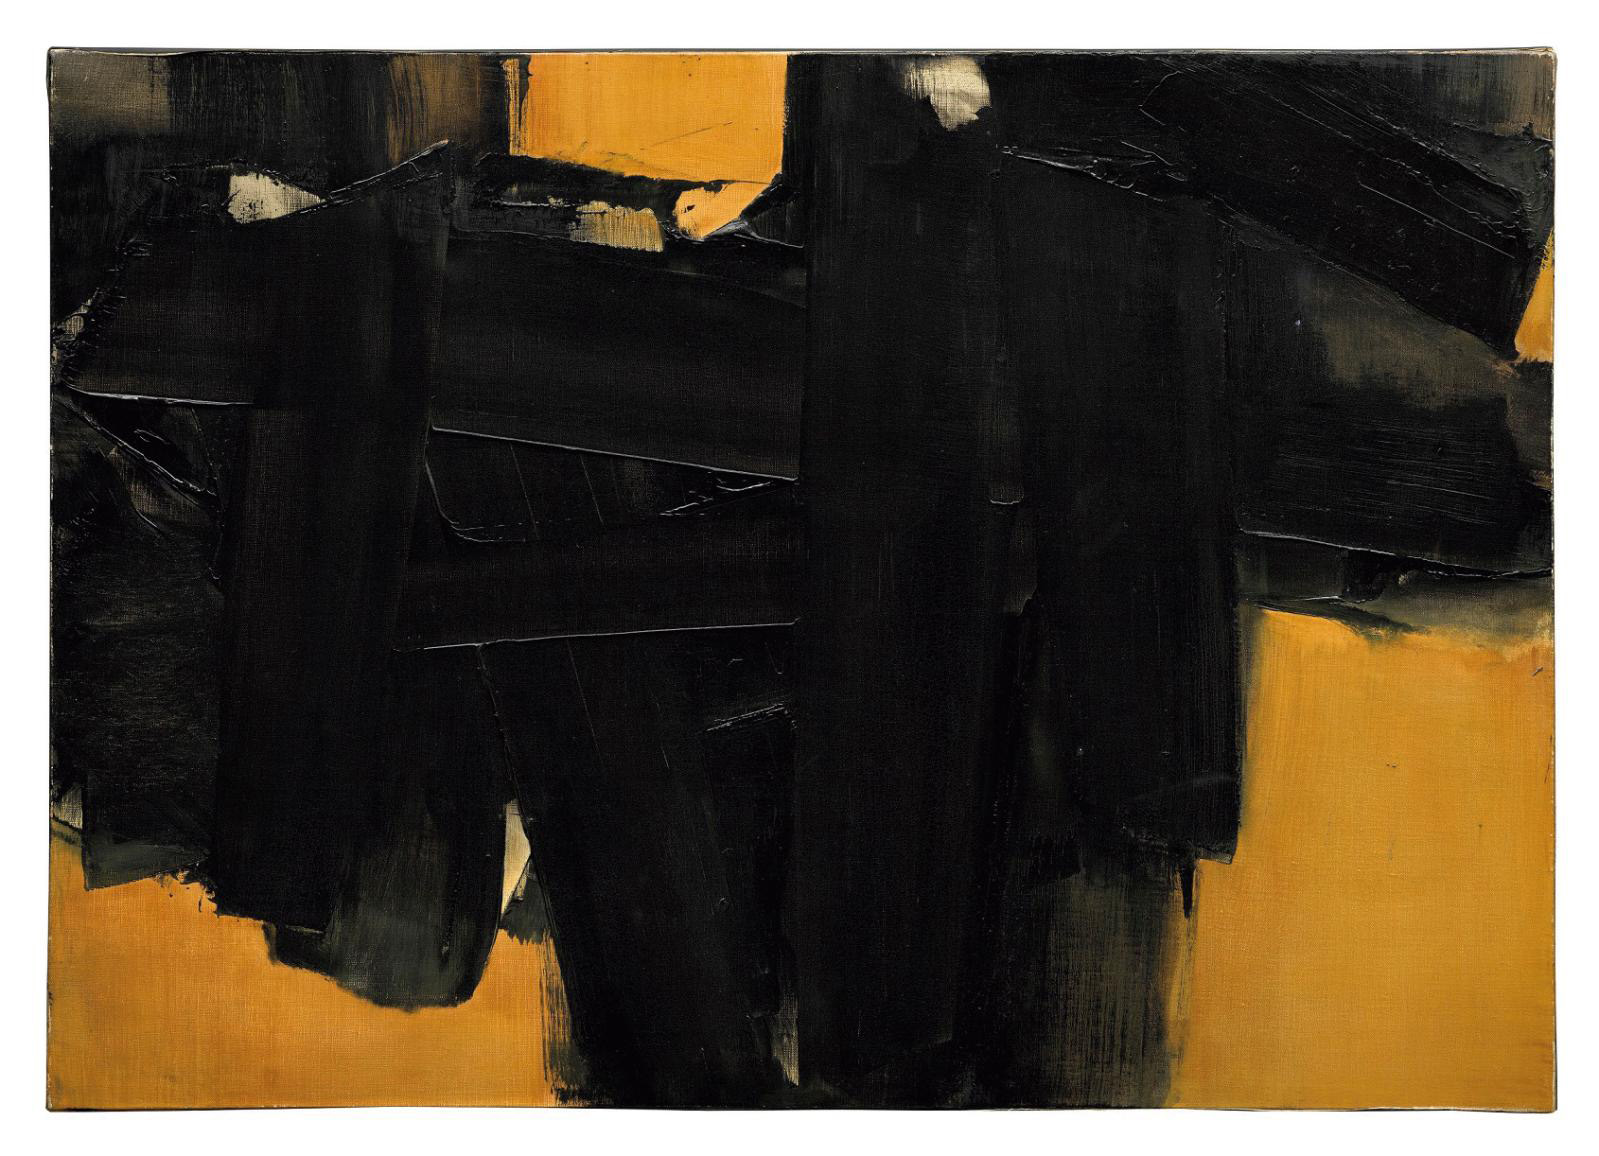 Pierre Soulages (b. 1919), Painting, 64.5 x 91 cm (approx. 25.4 x 35.8 in.), January 12, 1962.© Christie's Images Ltd, 2020